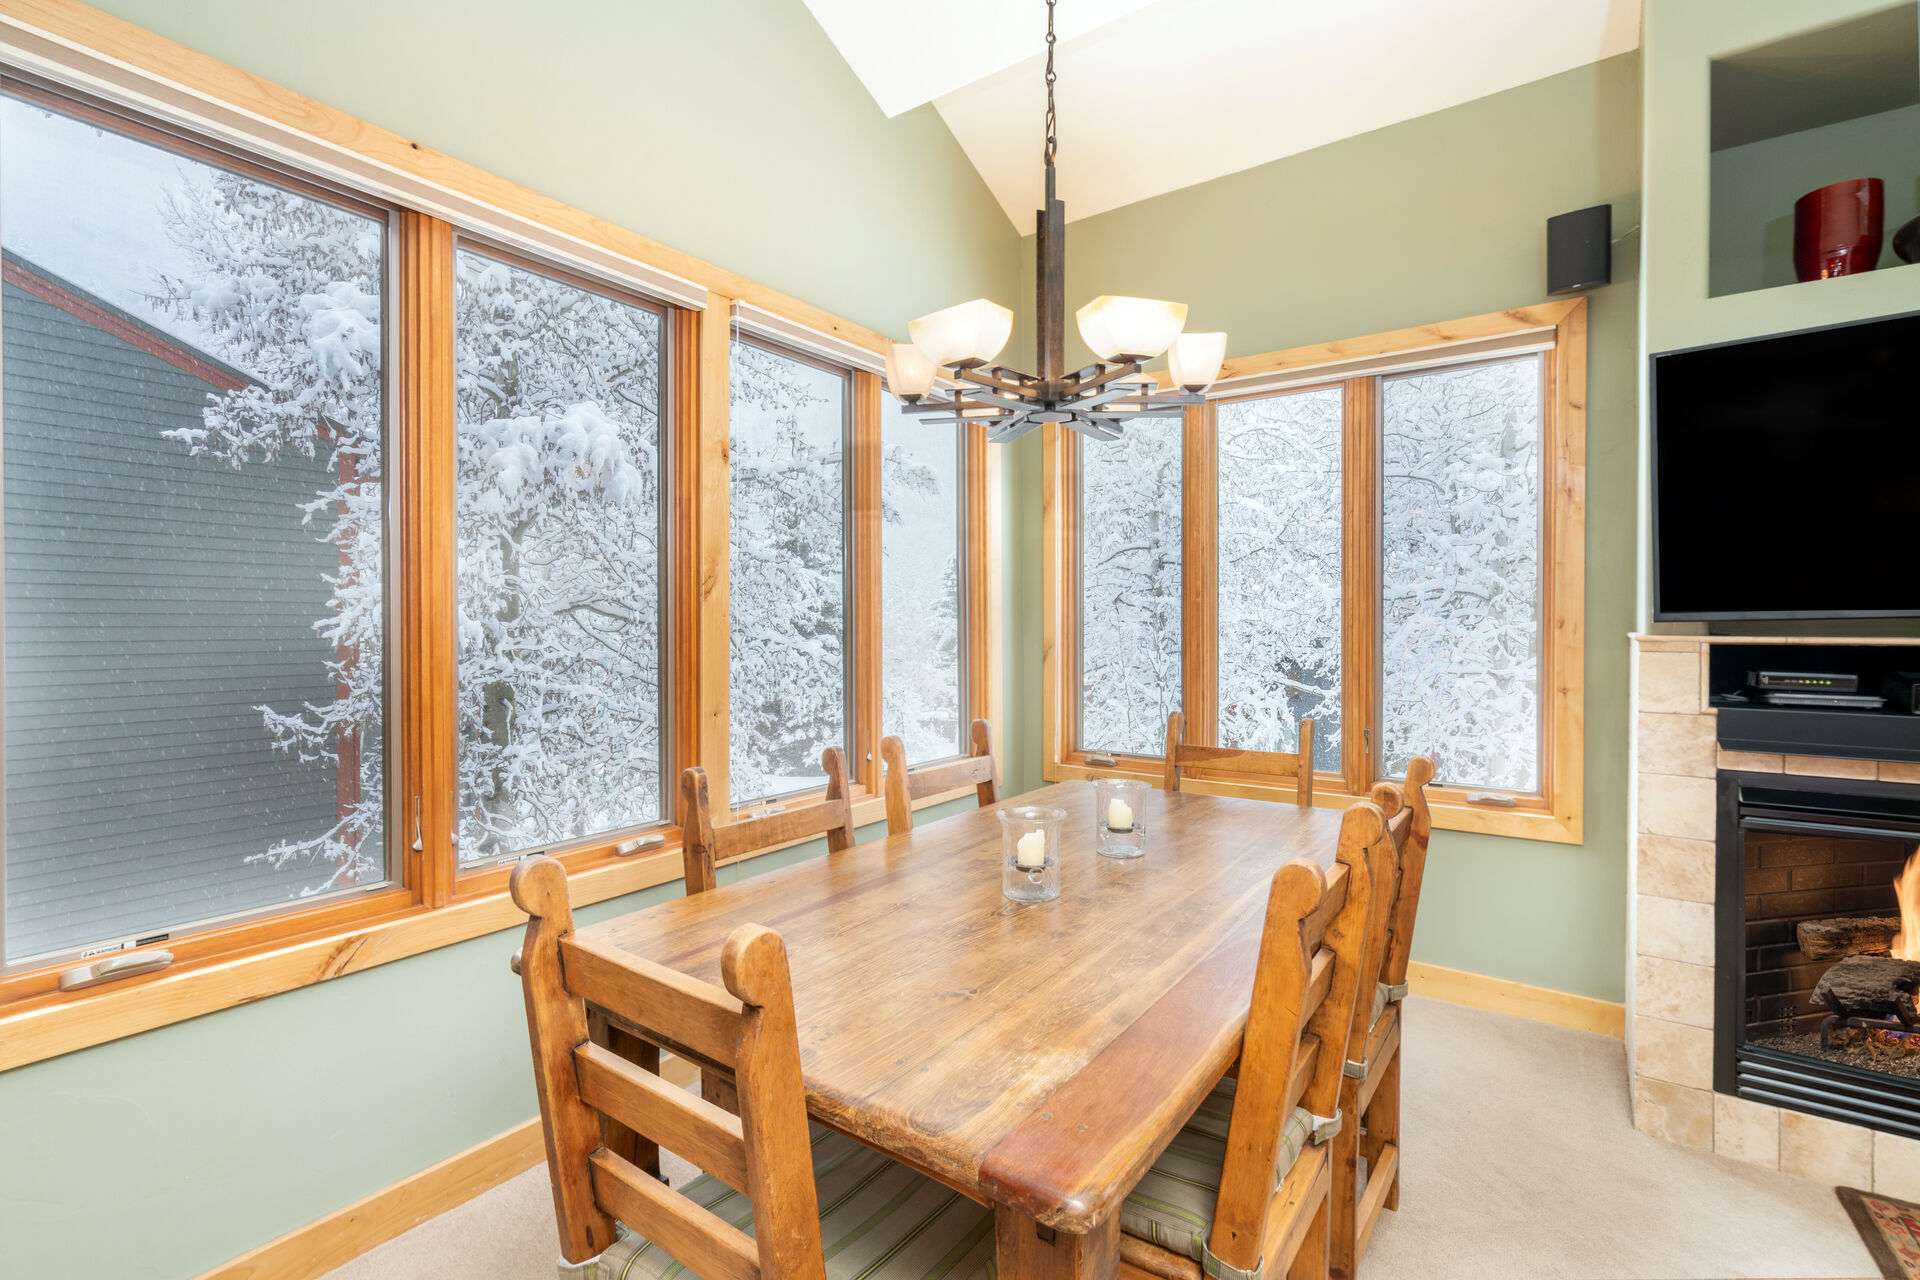 The dining room of this 2 bedroom condo in Telluride with seating for 6 and wrap-around windows.